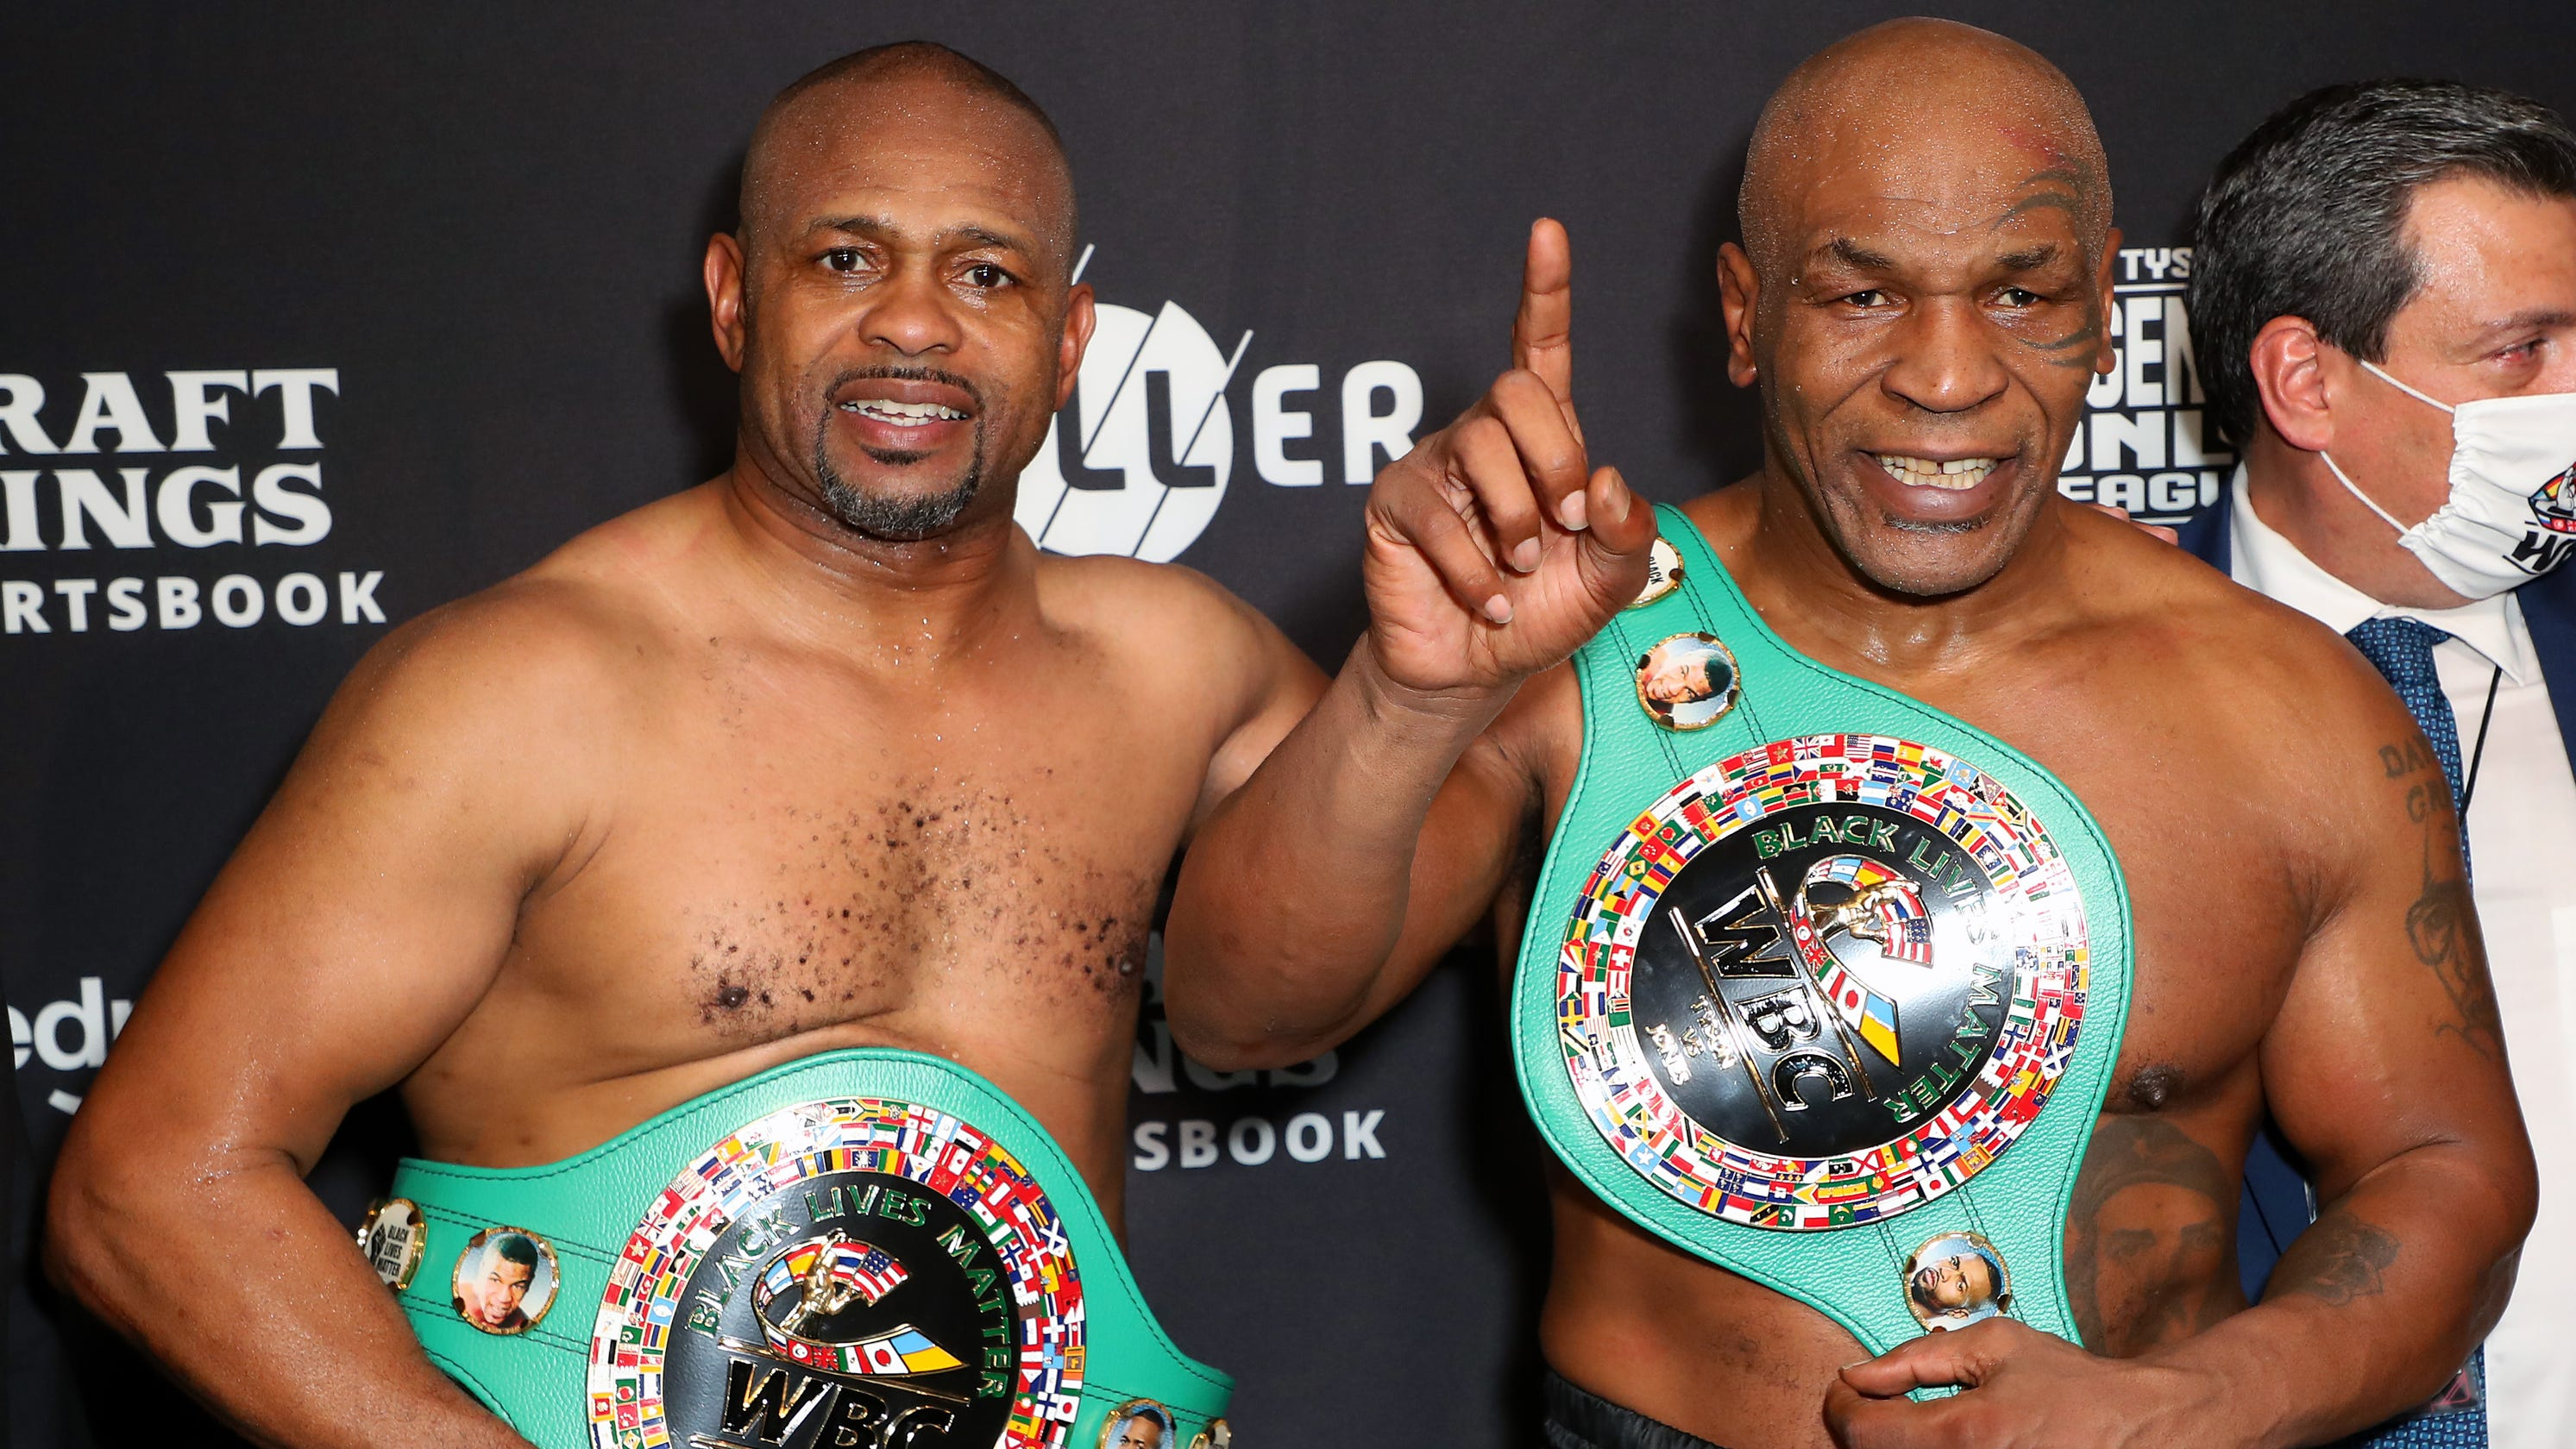 Mike Tyson's return to boxing against Roy Jones Jr. generated more than $80 million in revenue